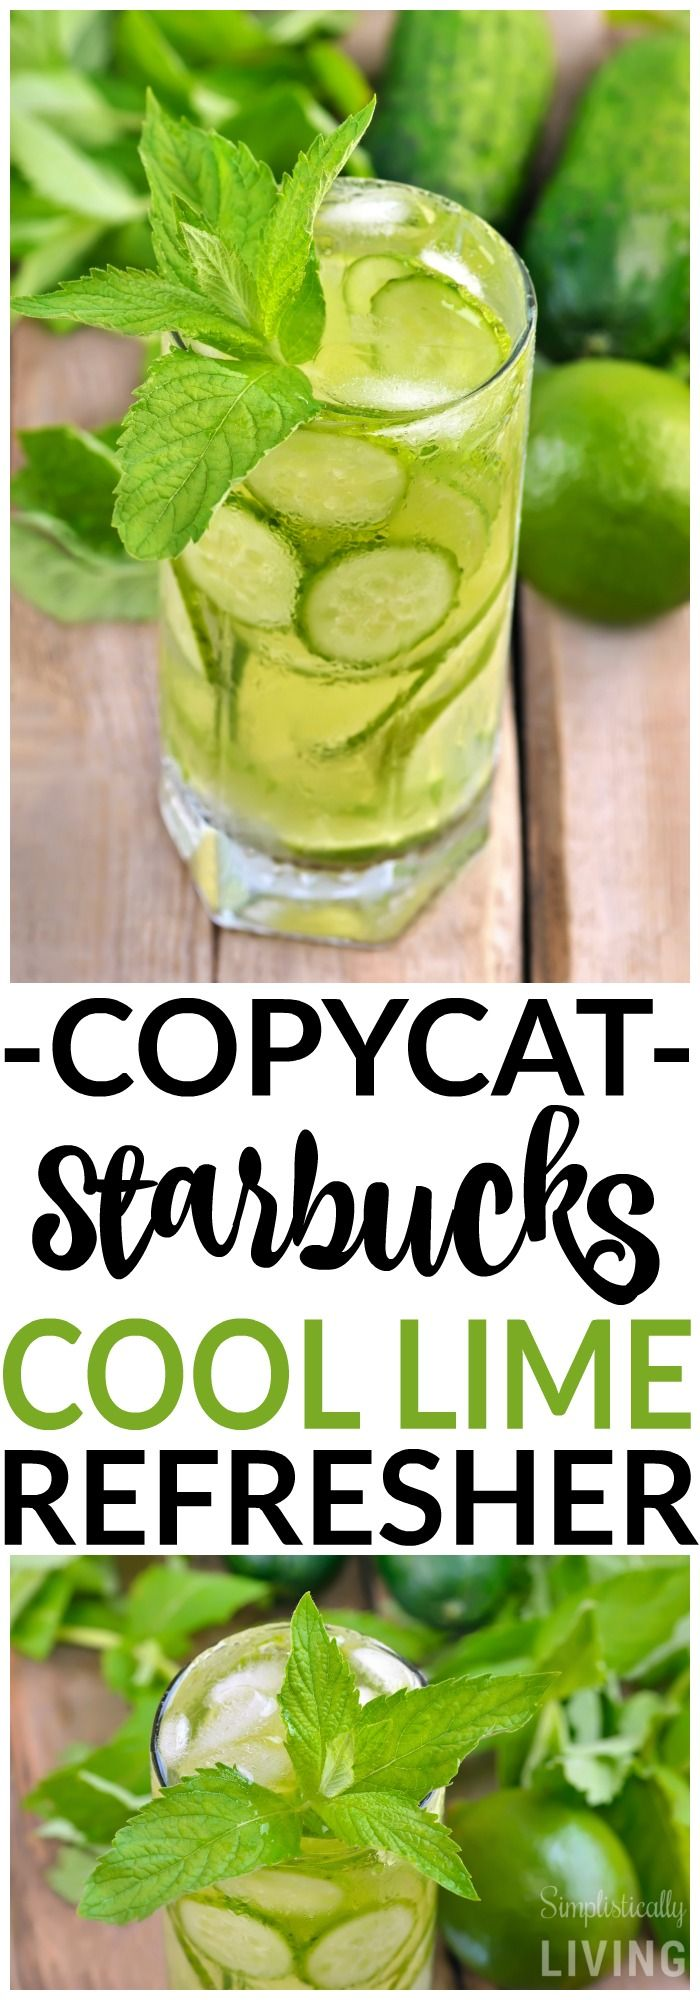 Copycat Starbucks Cool Lime Refresher - It's simply, refreshingly delicious!